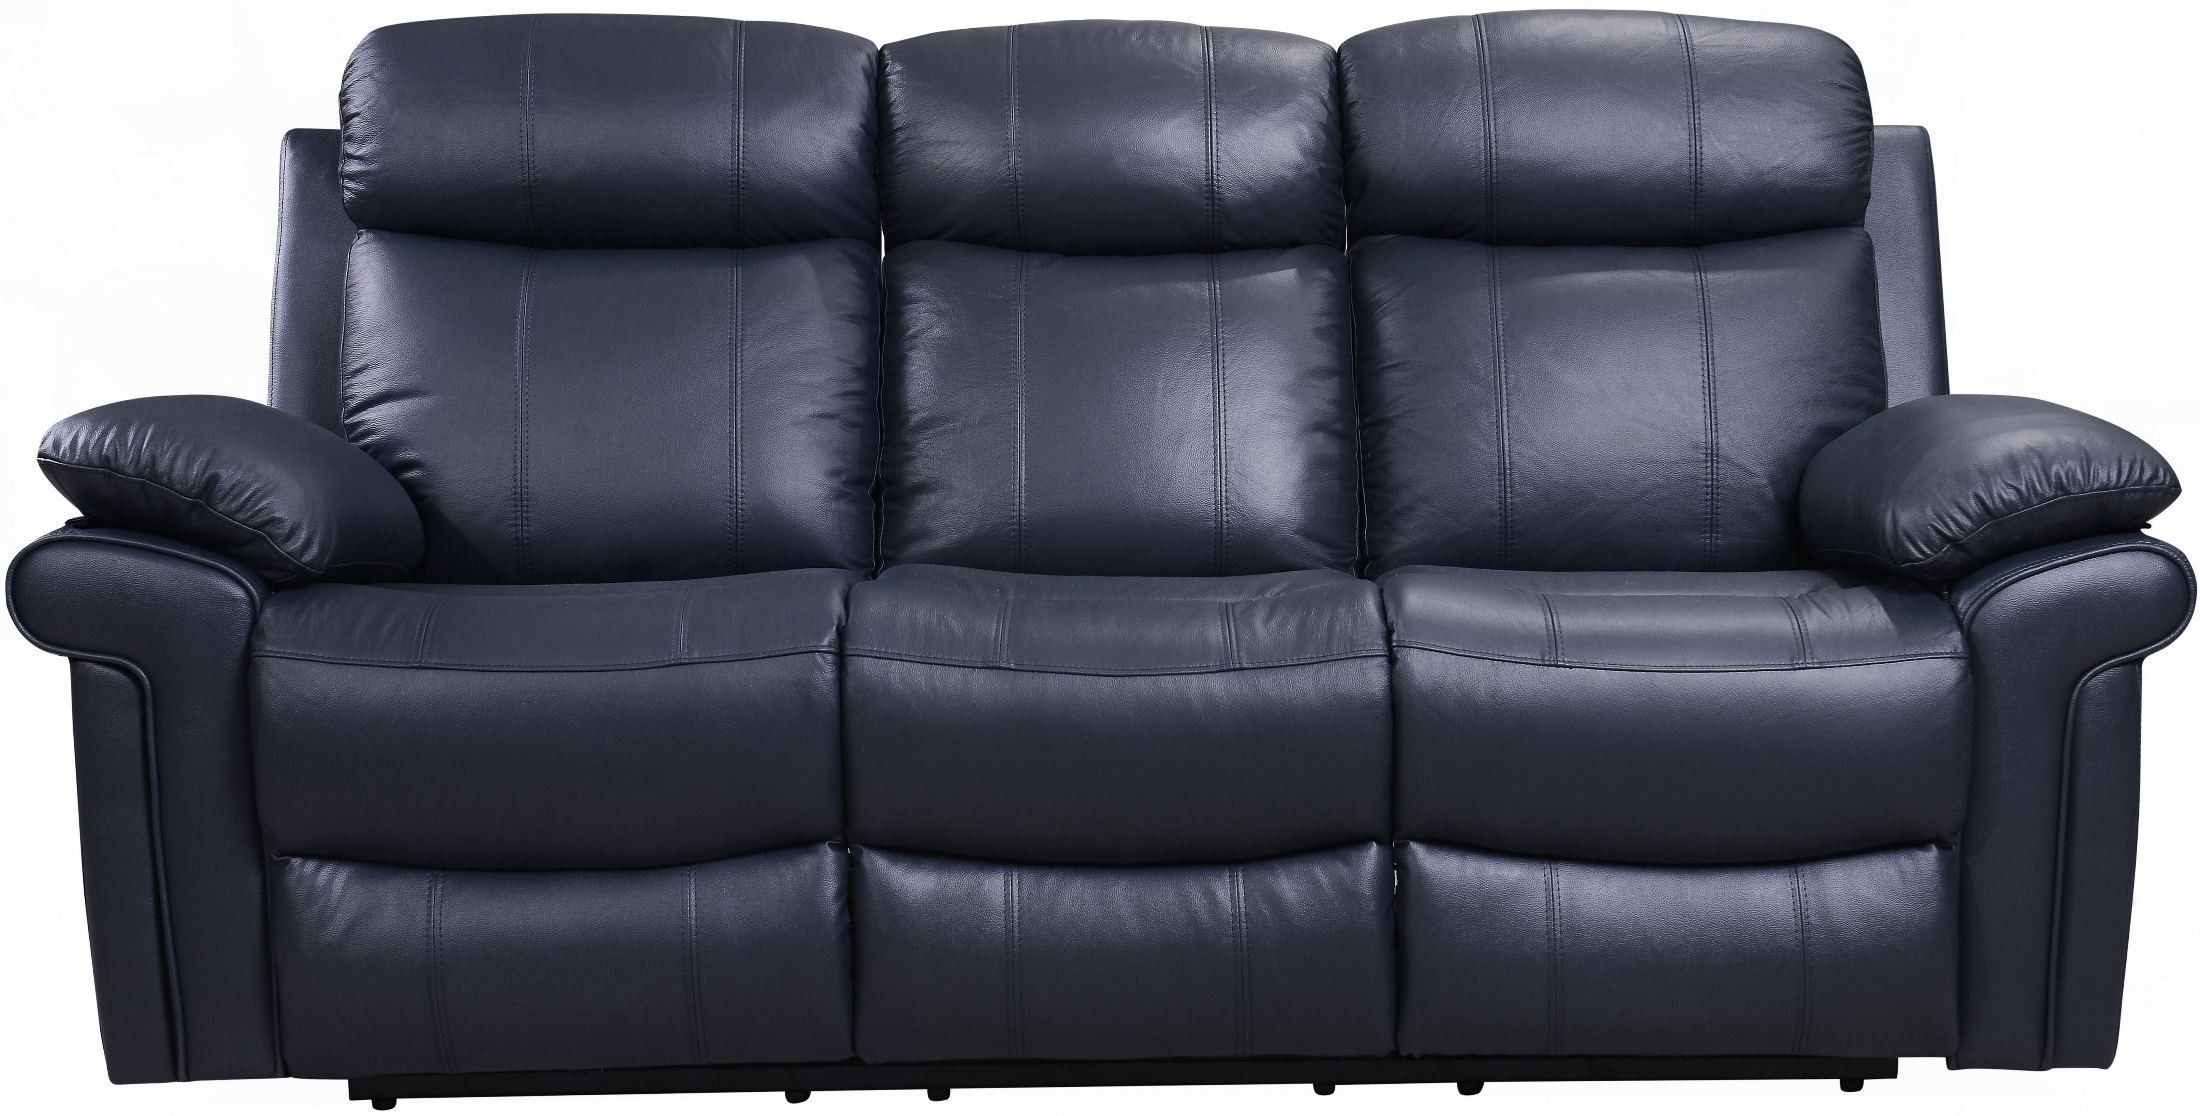 Shae Joplin Blue Leather Power Reclining Living Room Set From Luxe Leather Coleman Furniture